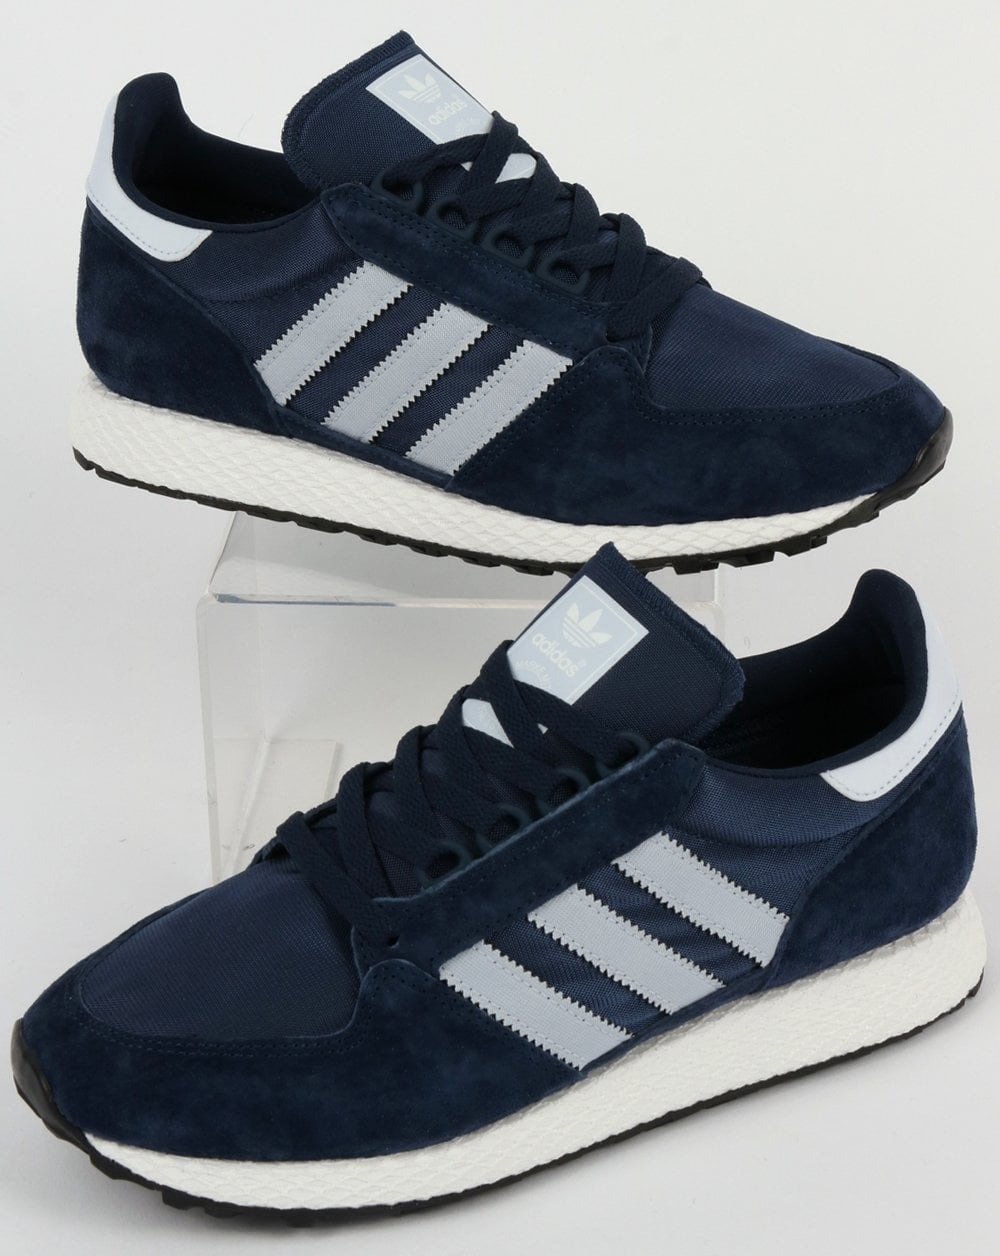 db353b84121aff adidas Trainers Adidas Forest Grove Trainers Navy Clear Blue